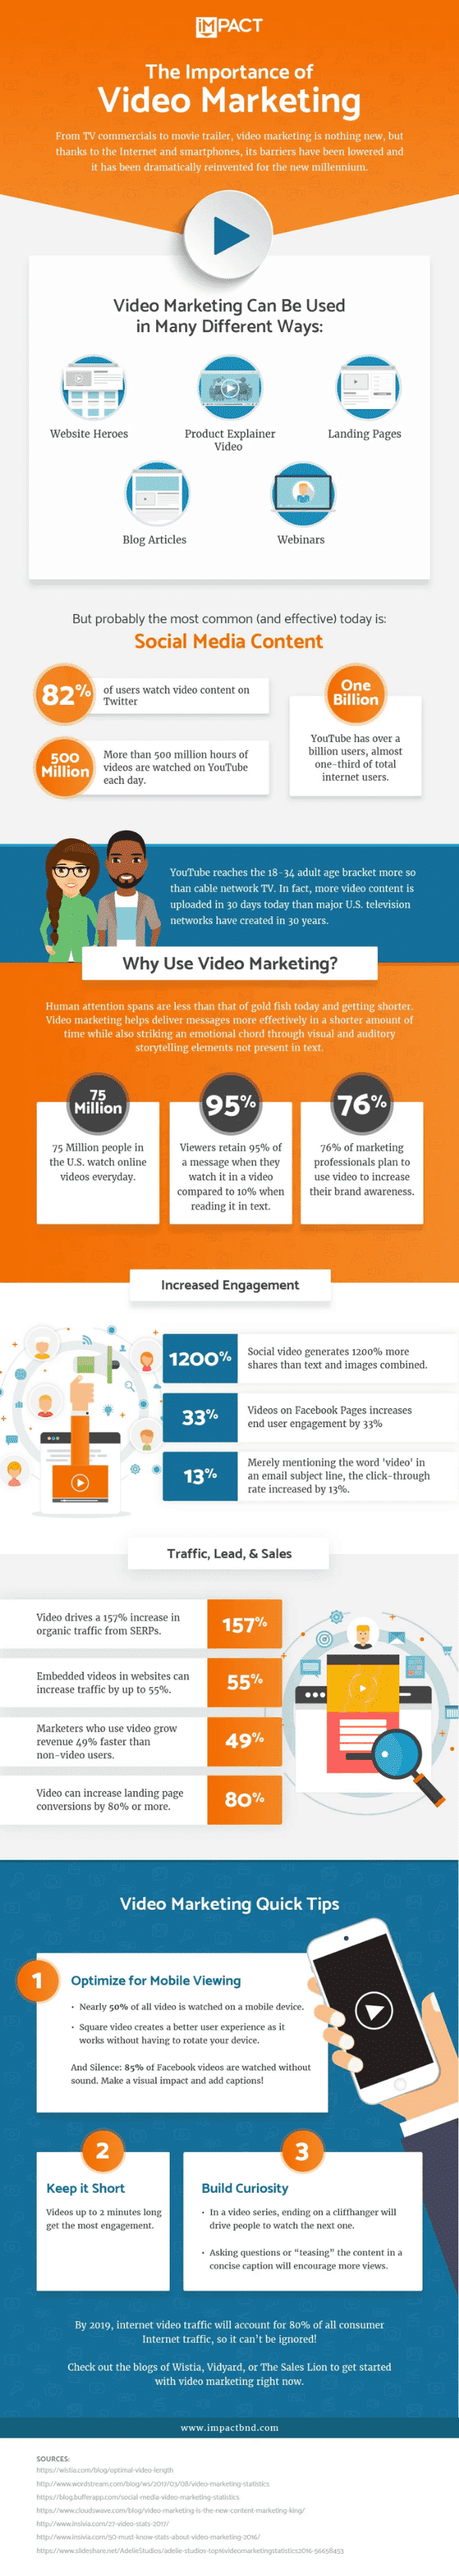 Learn more about the importance of video marketing in this amazing infographic!